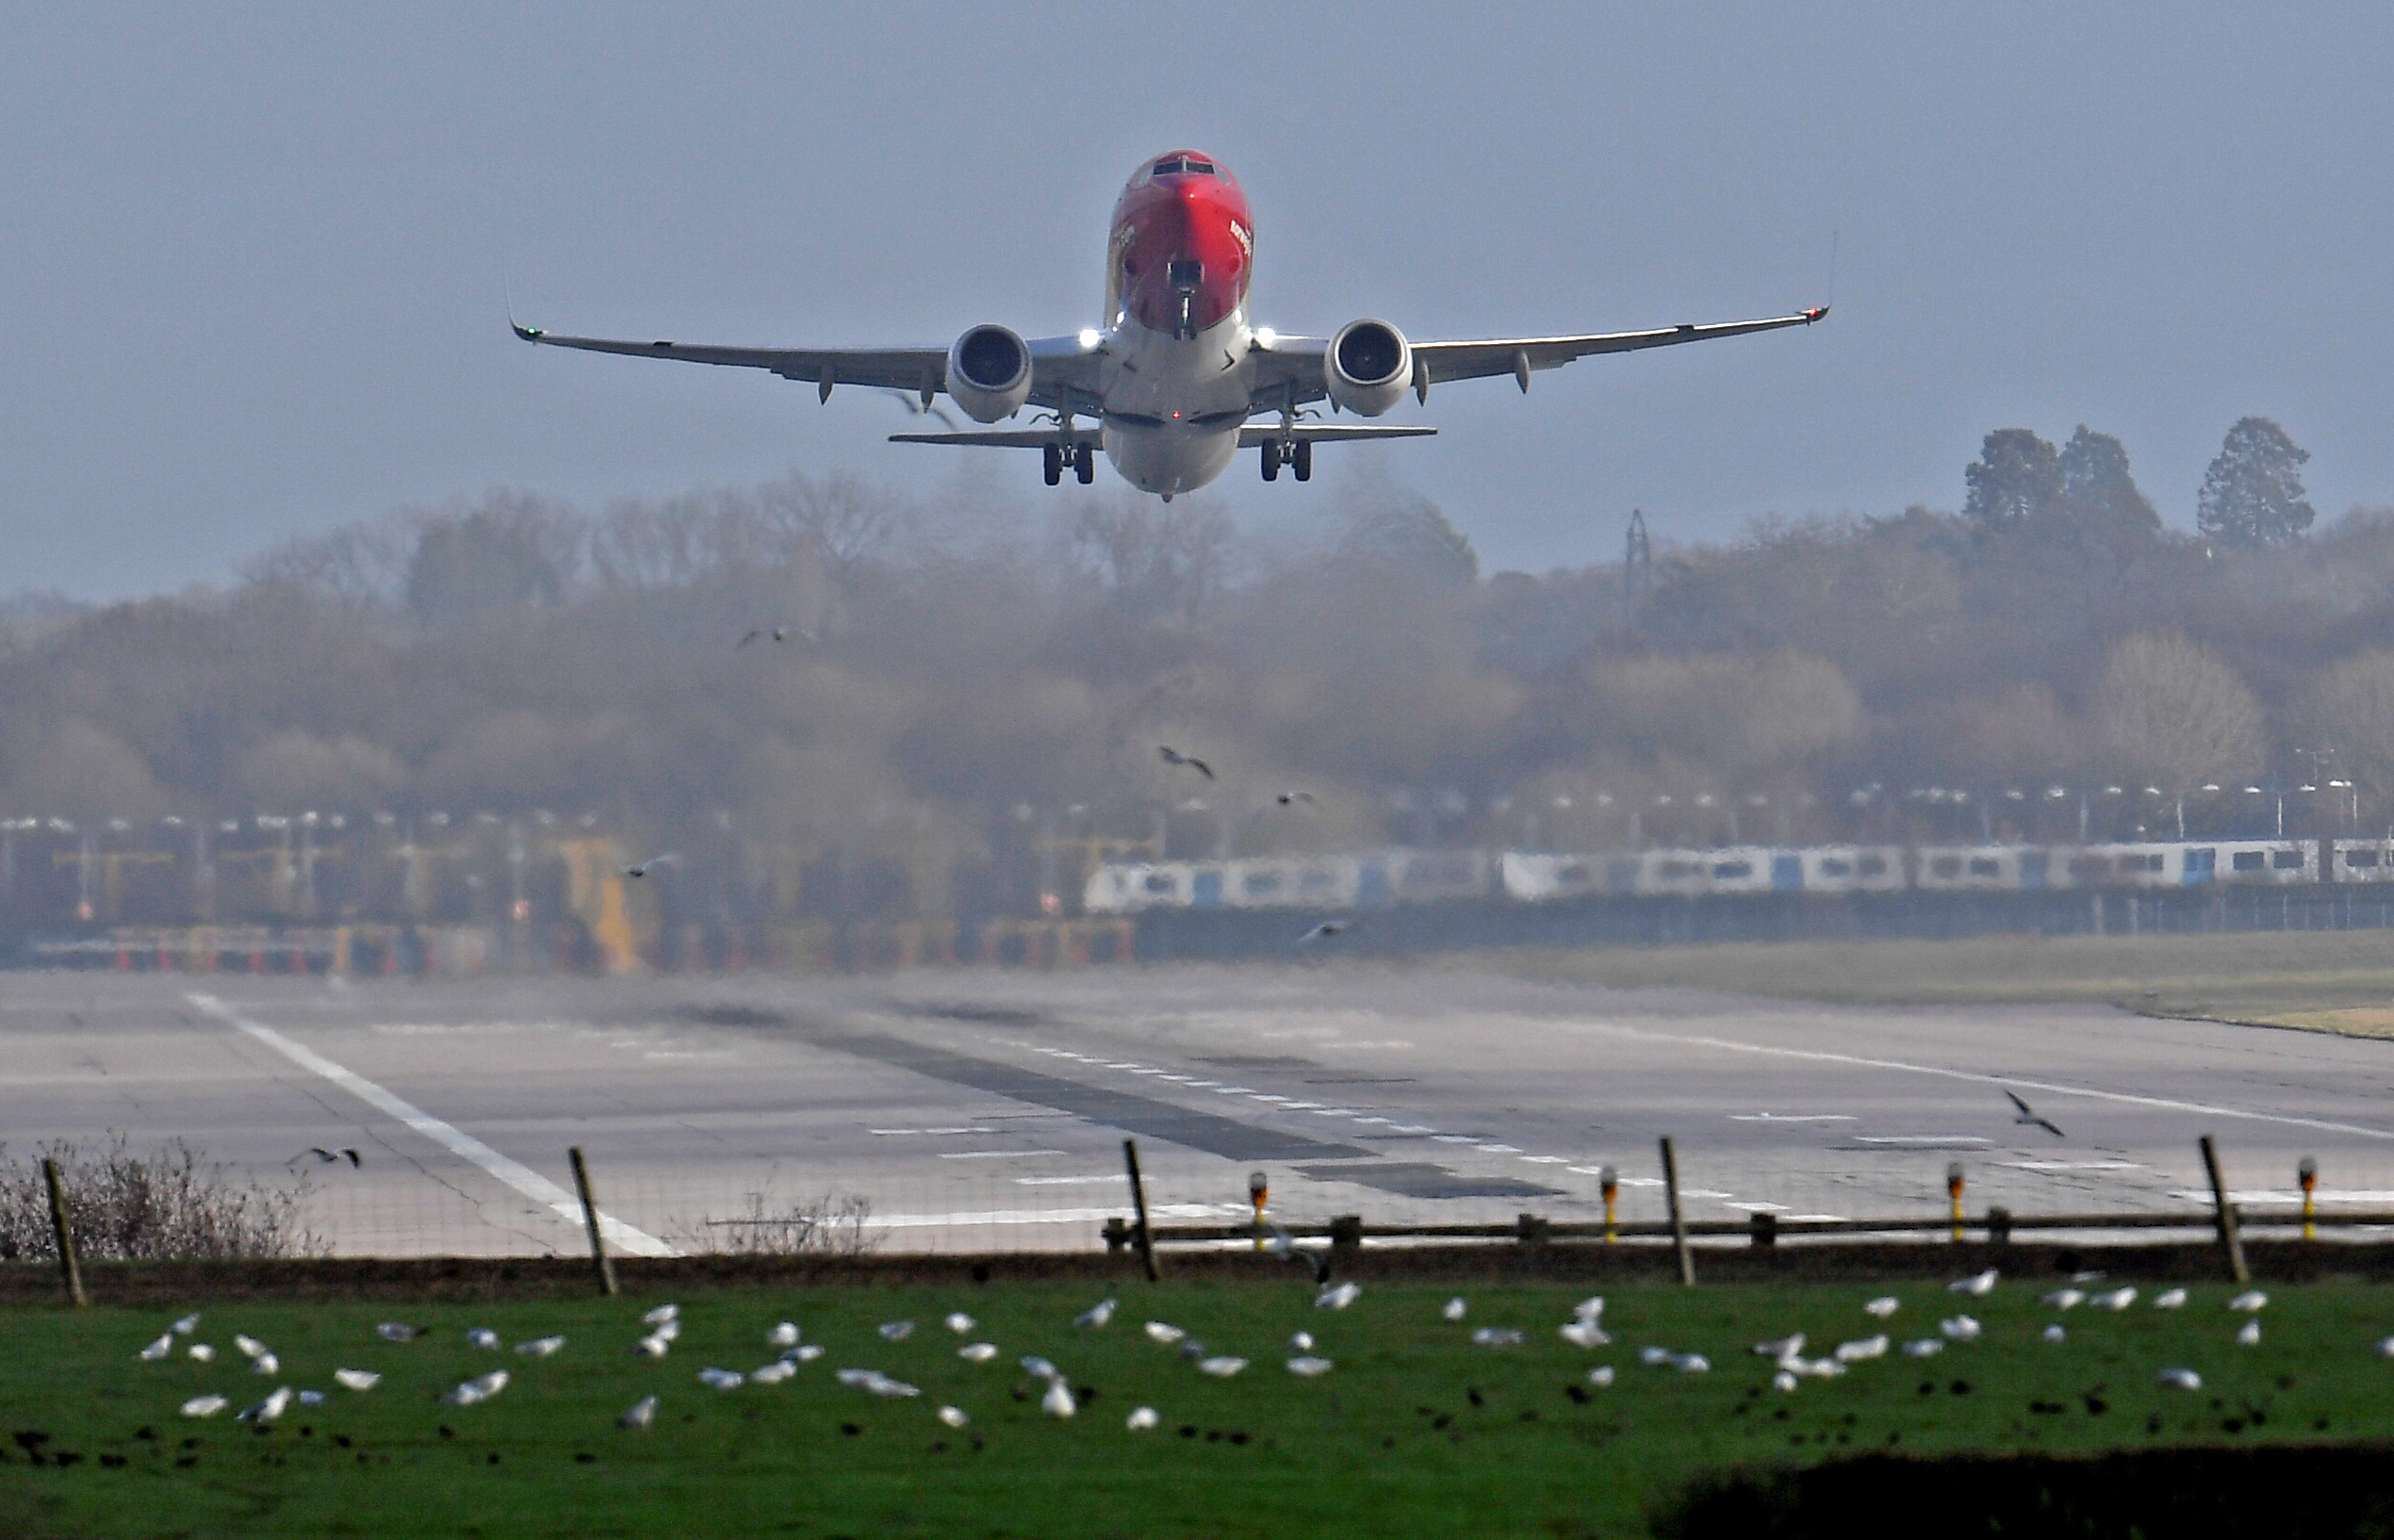 FILE PHOTO: An airplane takes off at Gatwick Airport, after the airport reopened to flights following its forced closure because of drone activity, in Gatwick, Britain, December 21, 2018. REUTERS/Toby Melville/File Photo